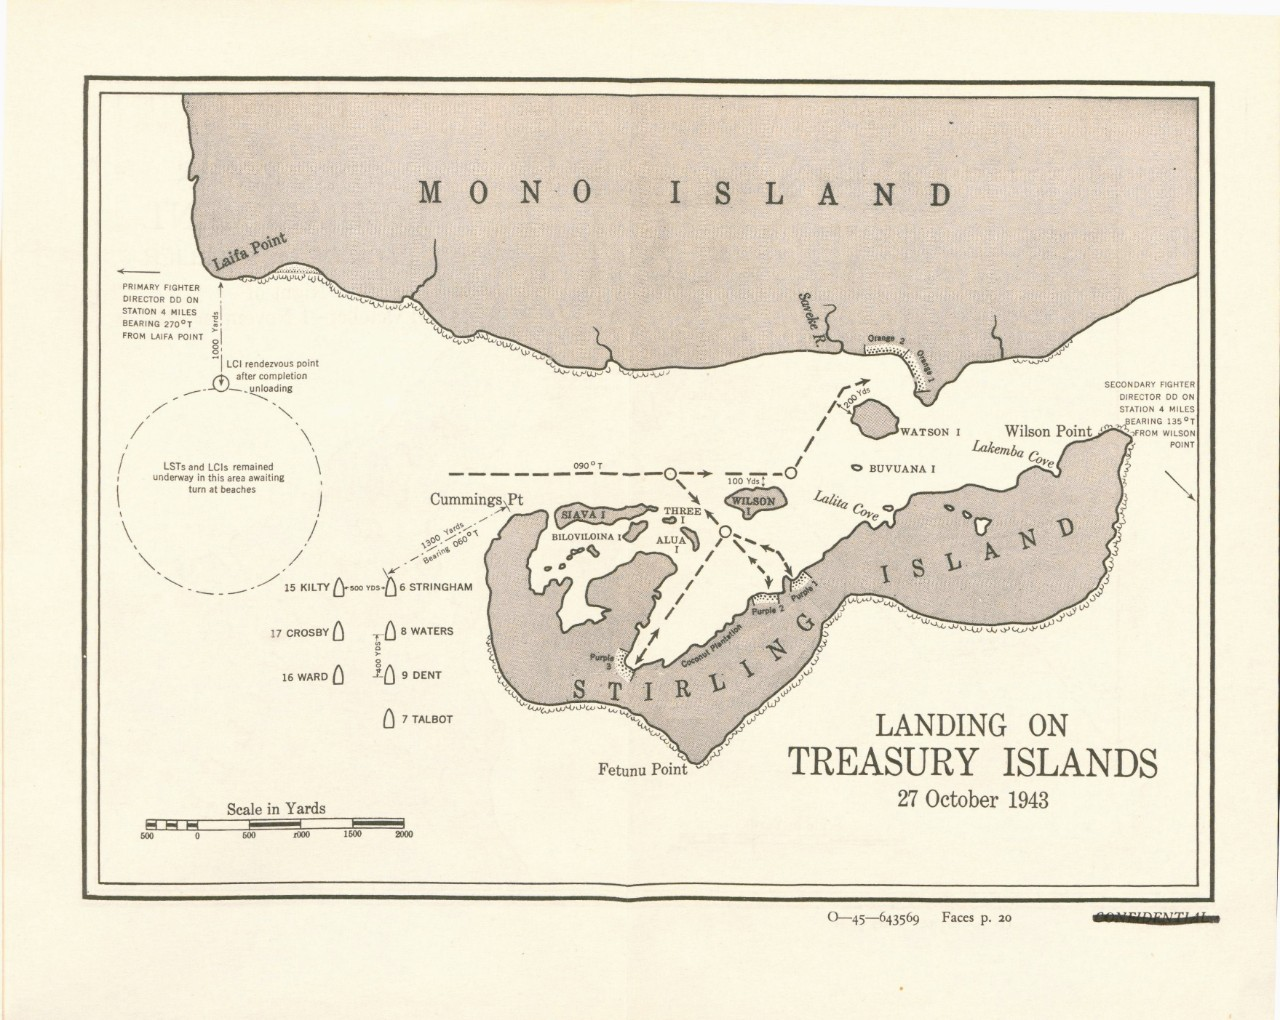 Map of Landing on Treasury Island 27 October 1943